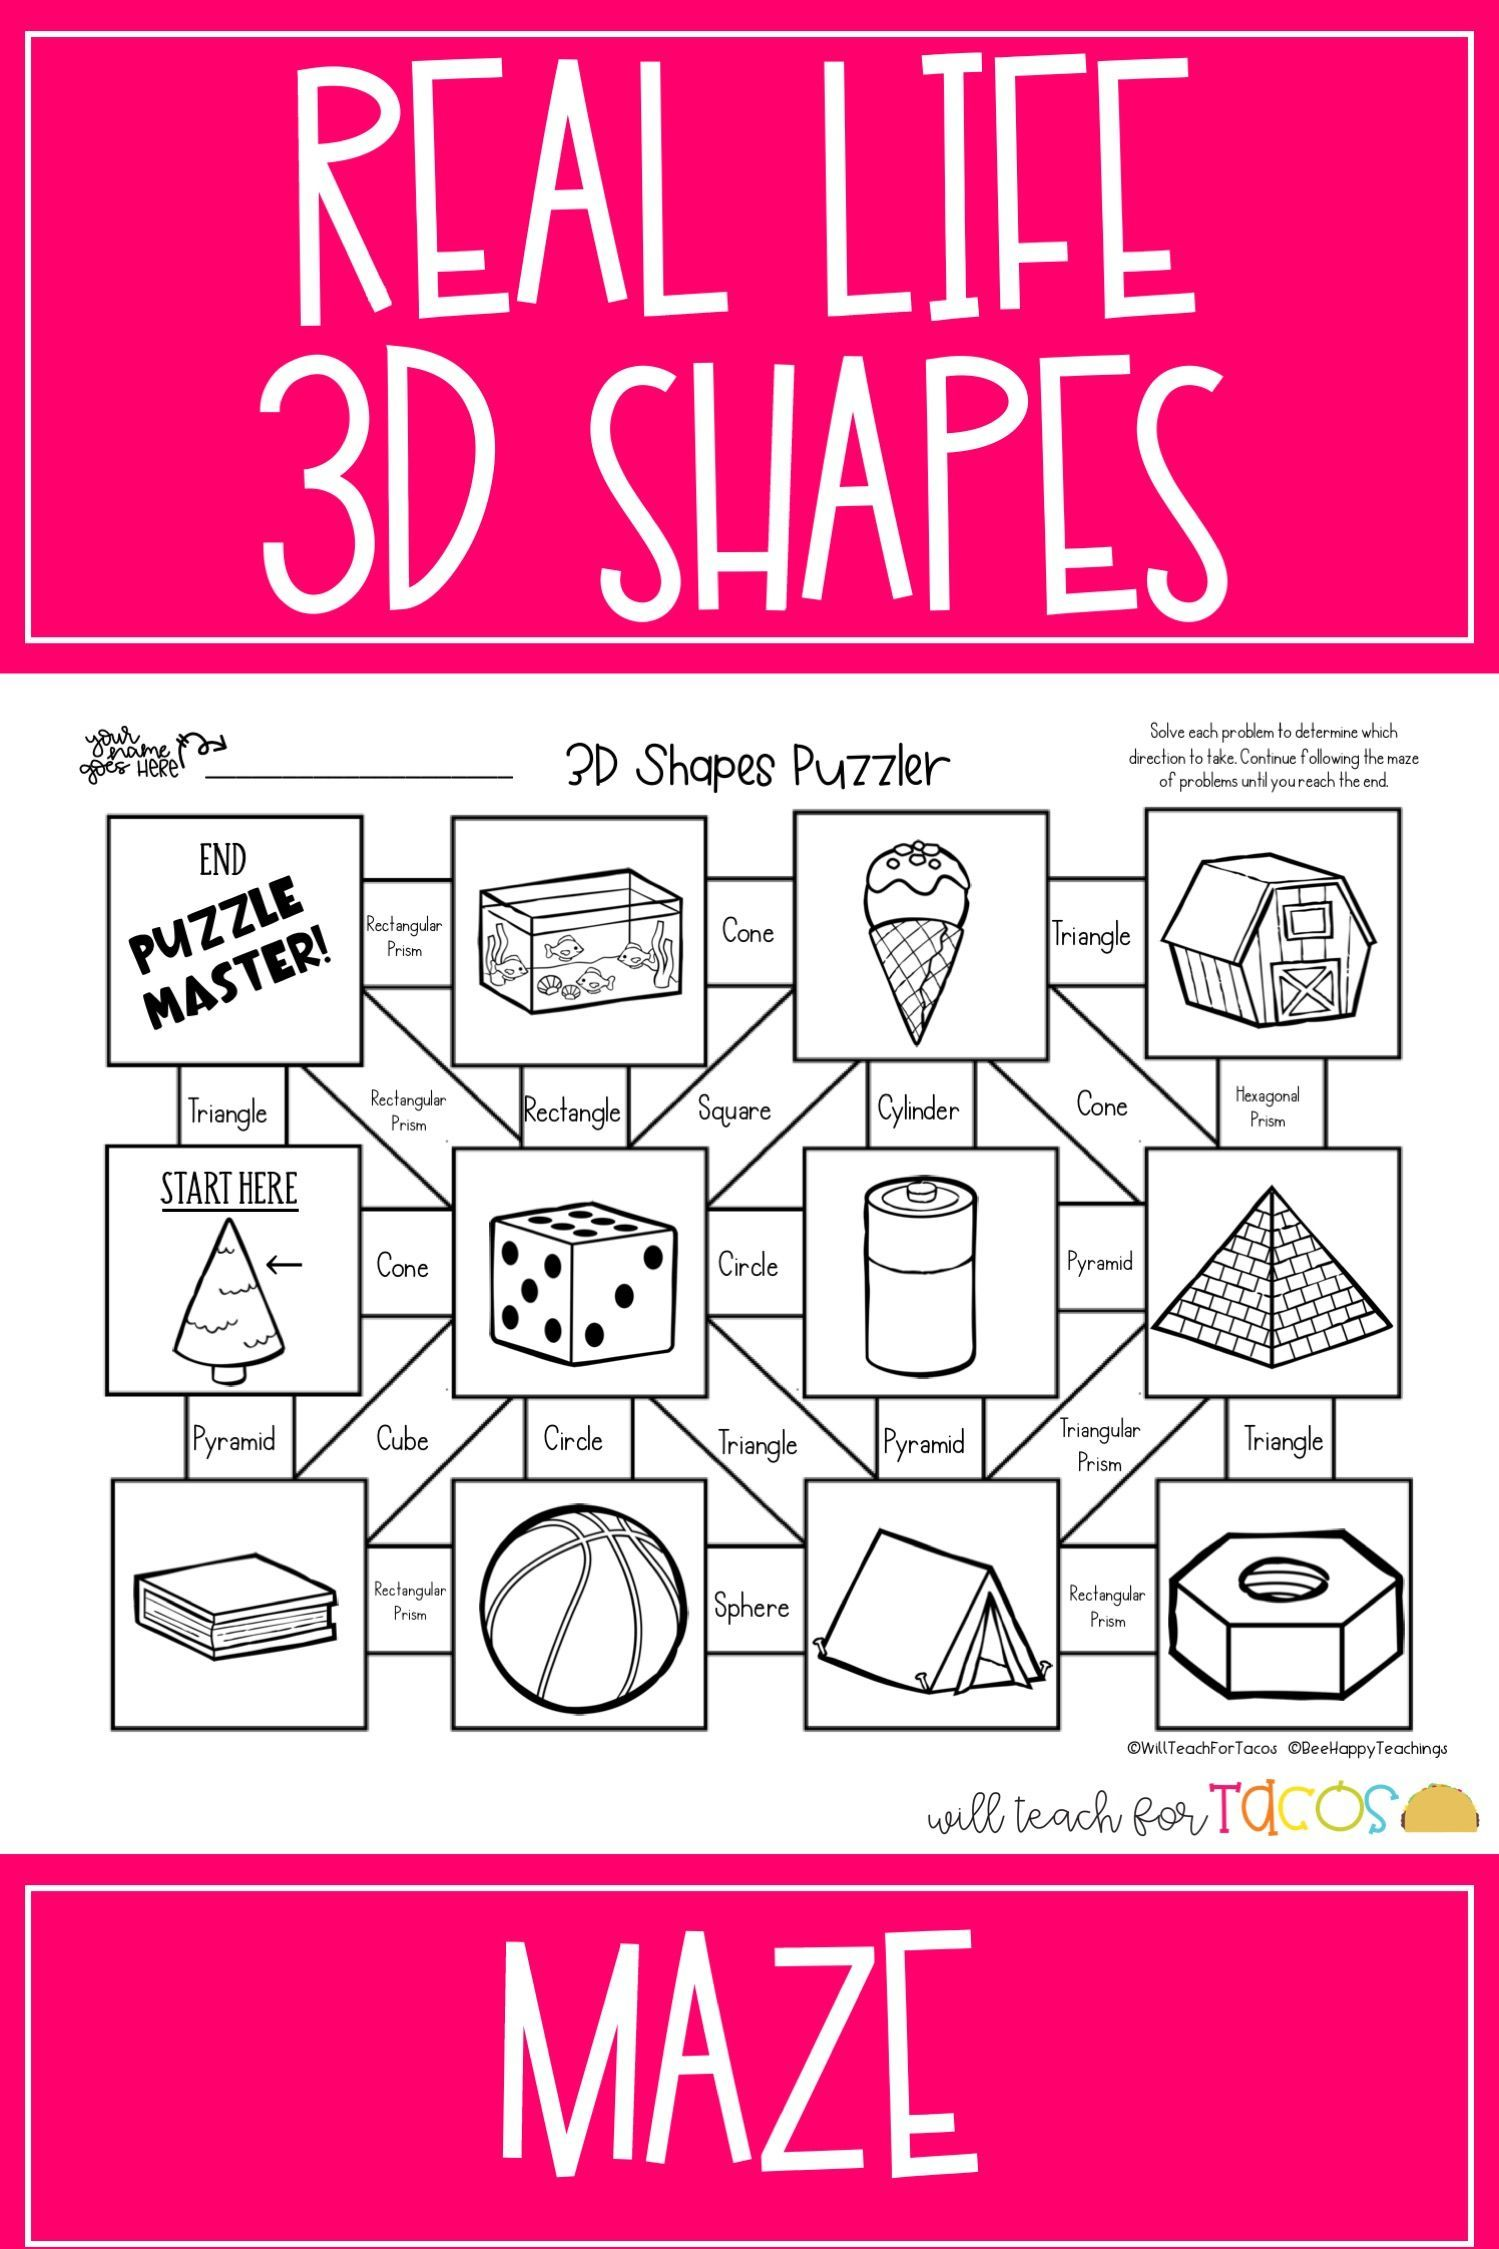 hight resolution of classifying 3D shapes with real life objects; maze for 3rd grade    Elementary math games